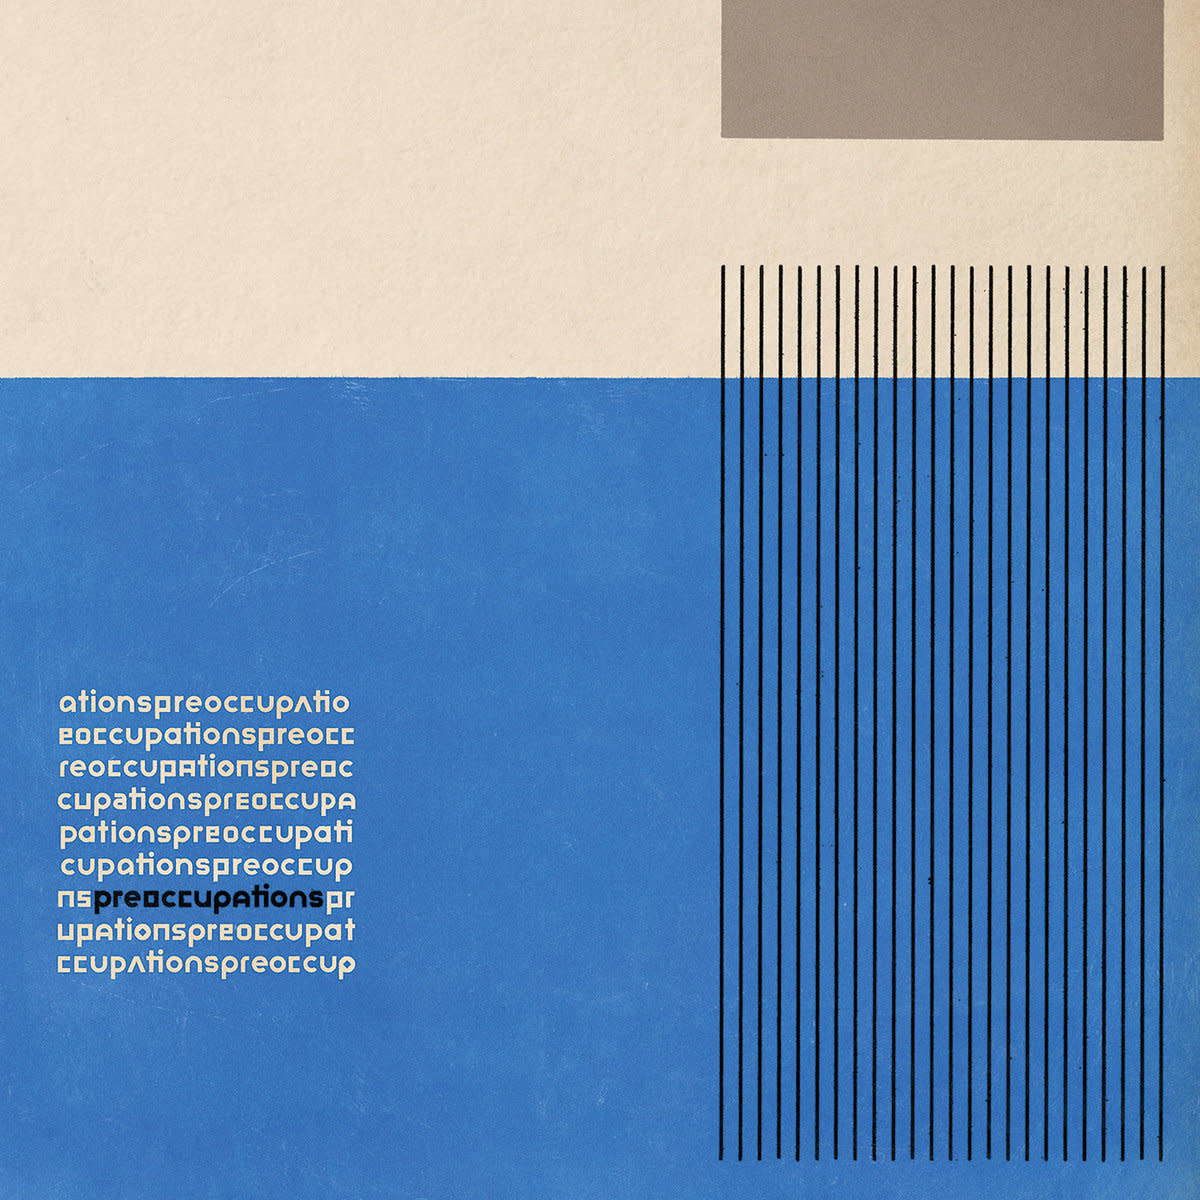 Preoccupations • Preoccupations-1